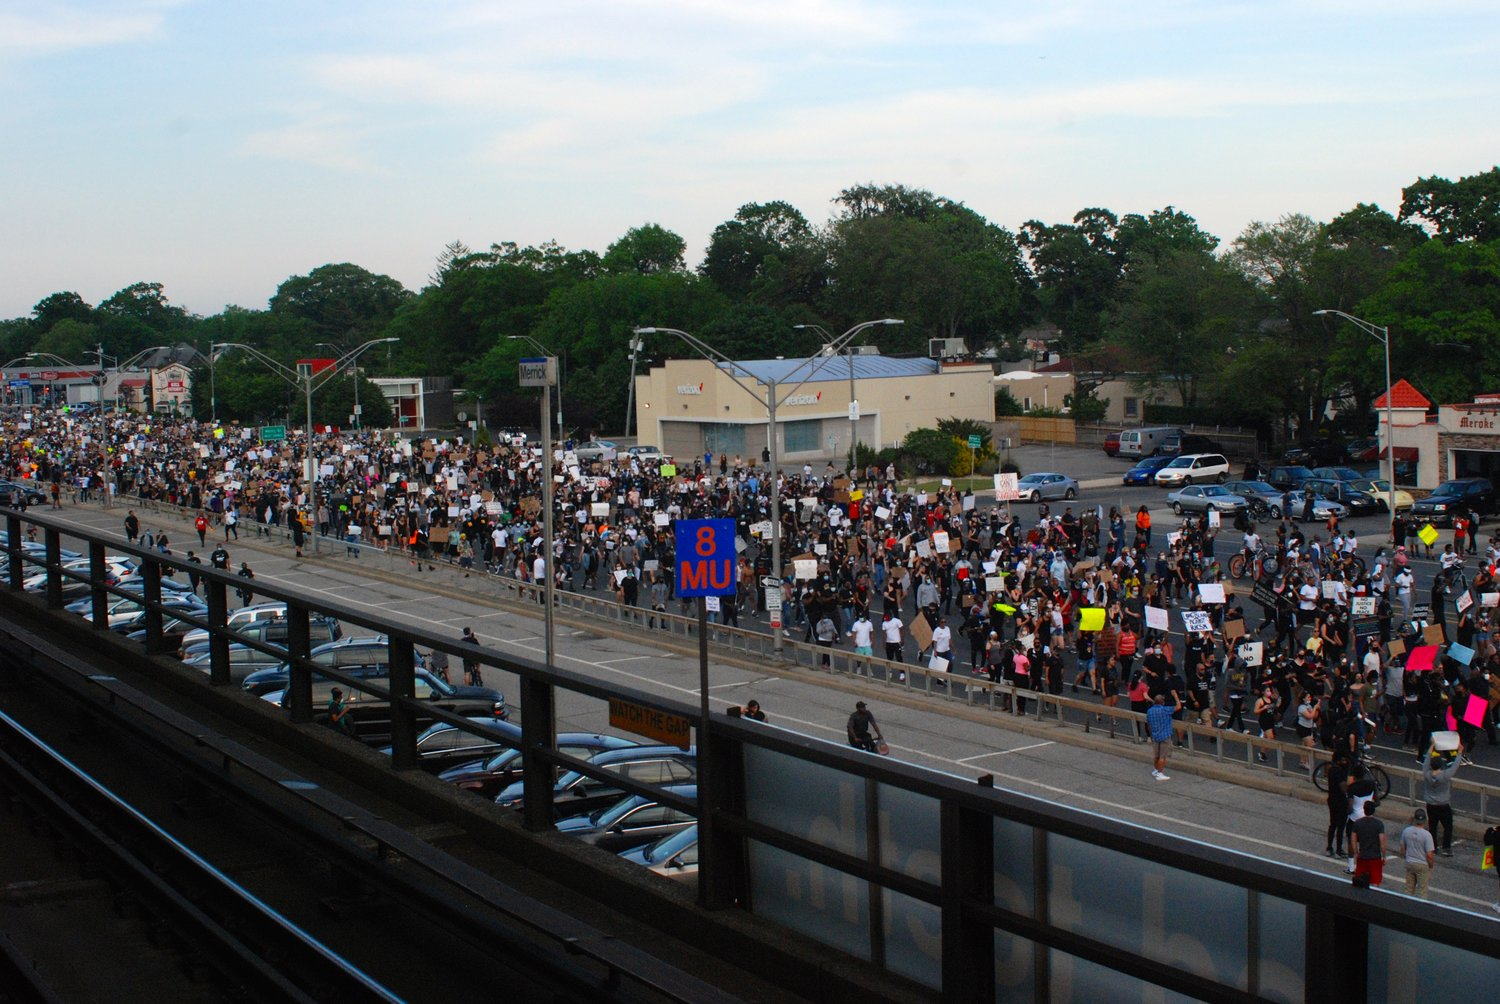 Nassau County police estimated the crowd at 4,000 people. Above, protesters on Sunrise Highway arriving at the Merrick Long Island Rail Road station.